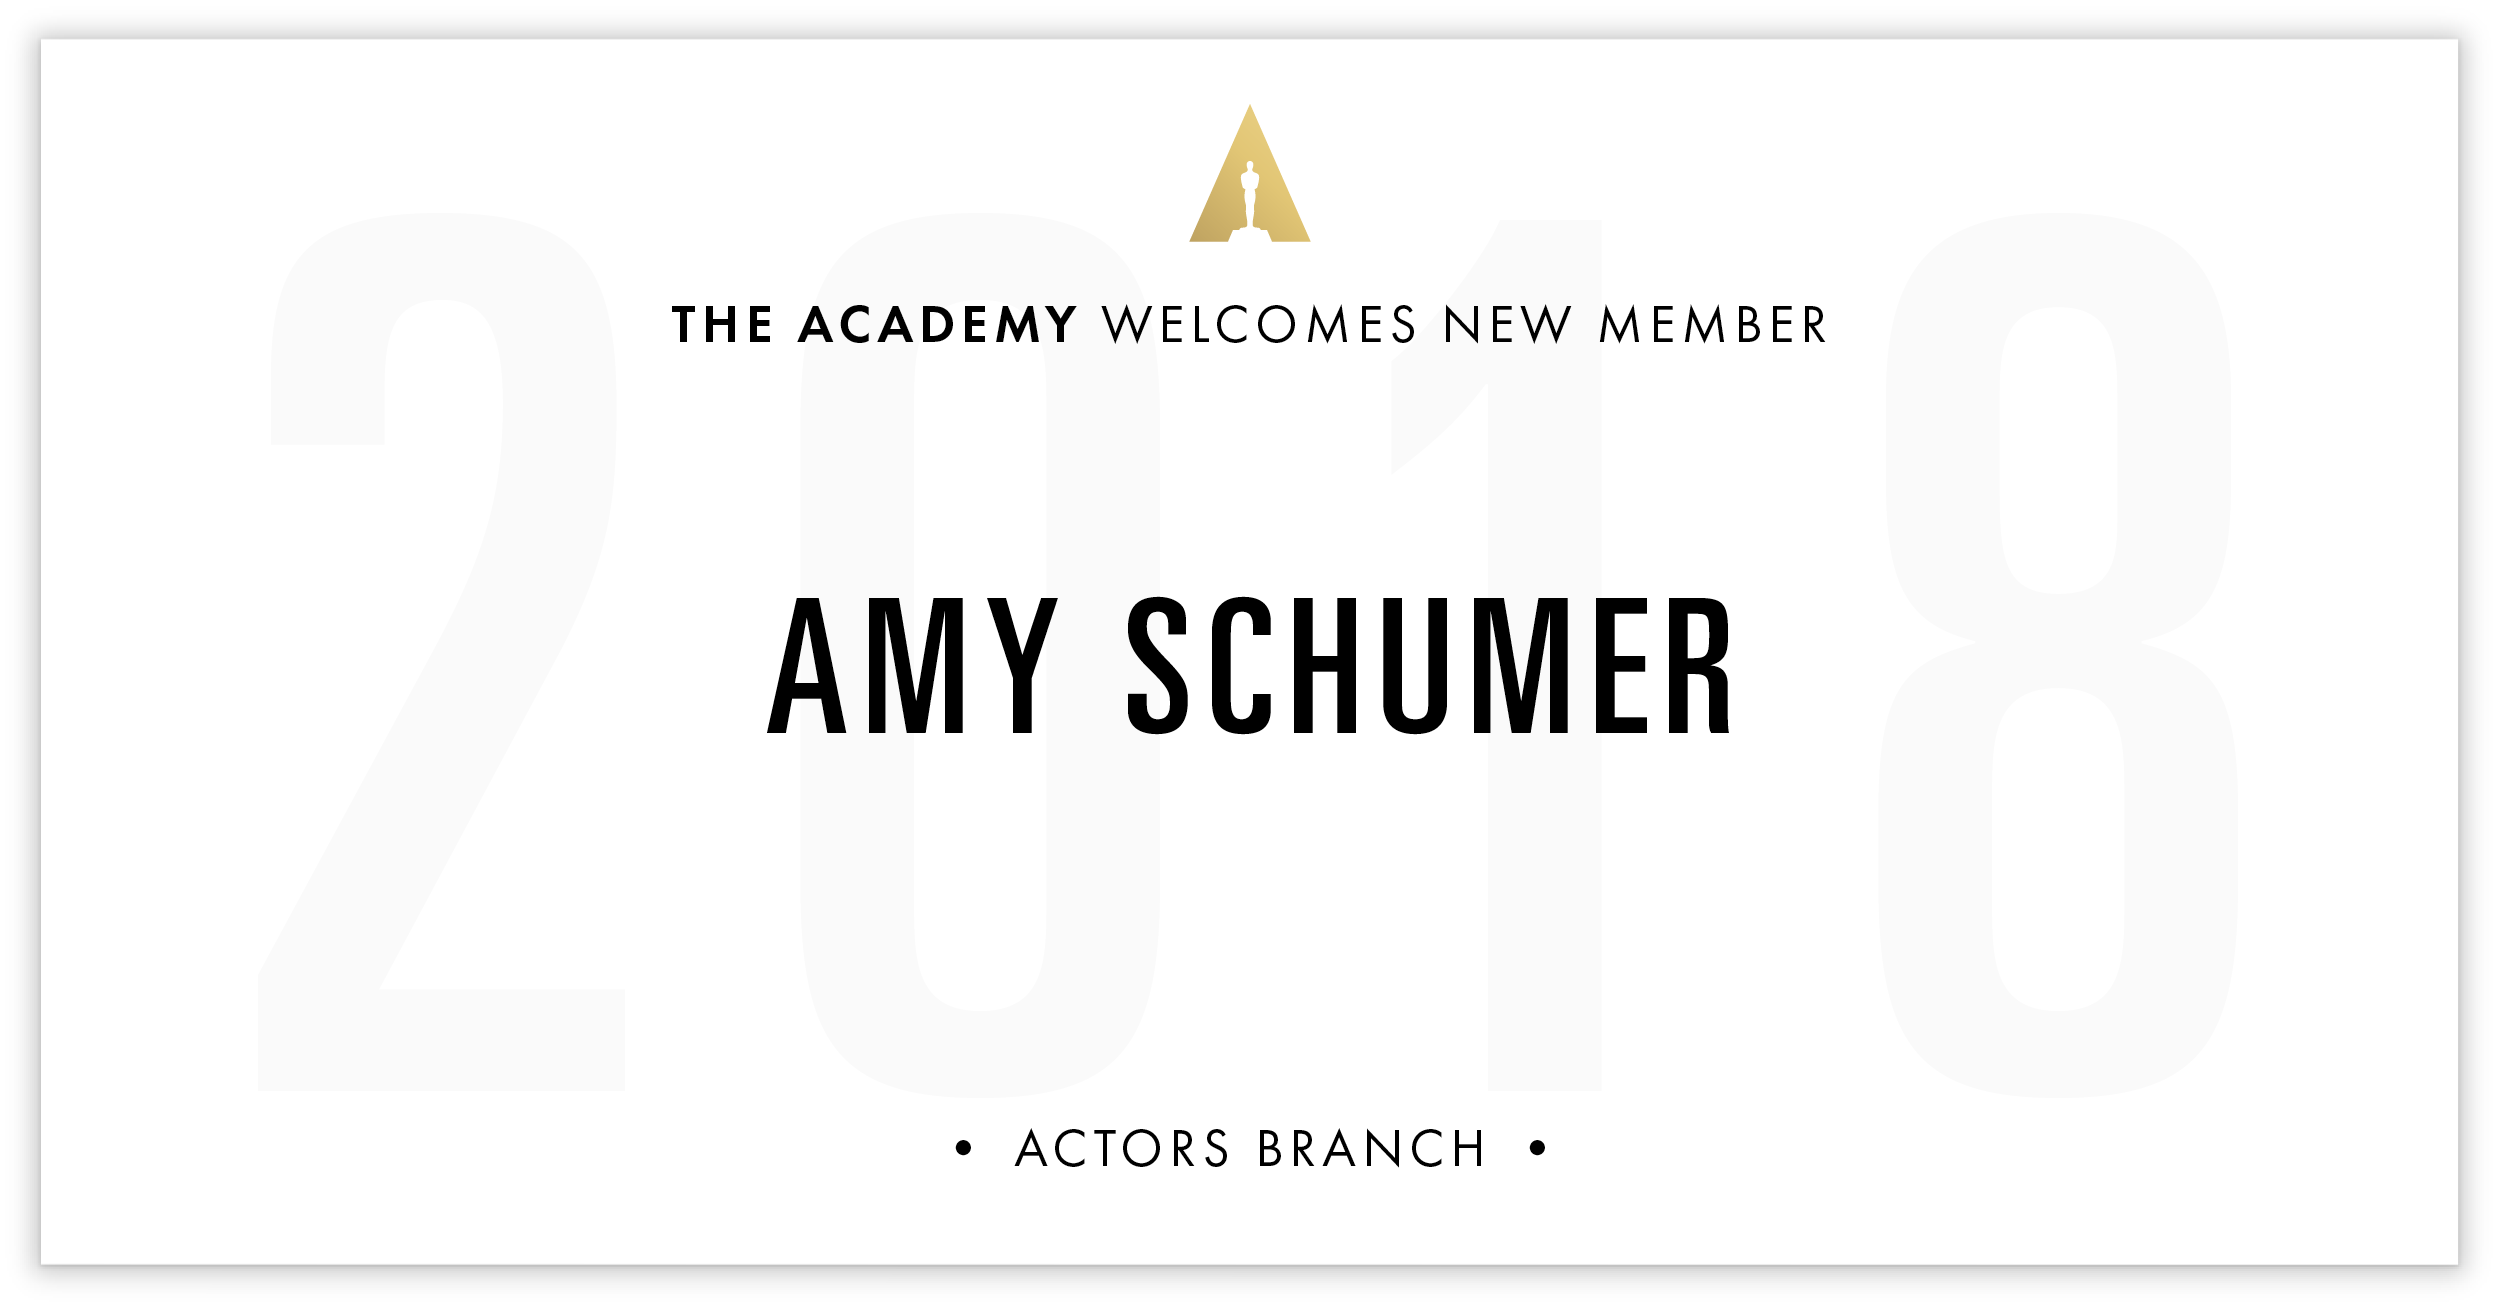 Amy Schumer is invited!